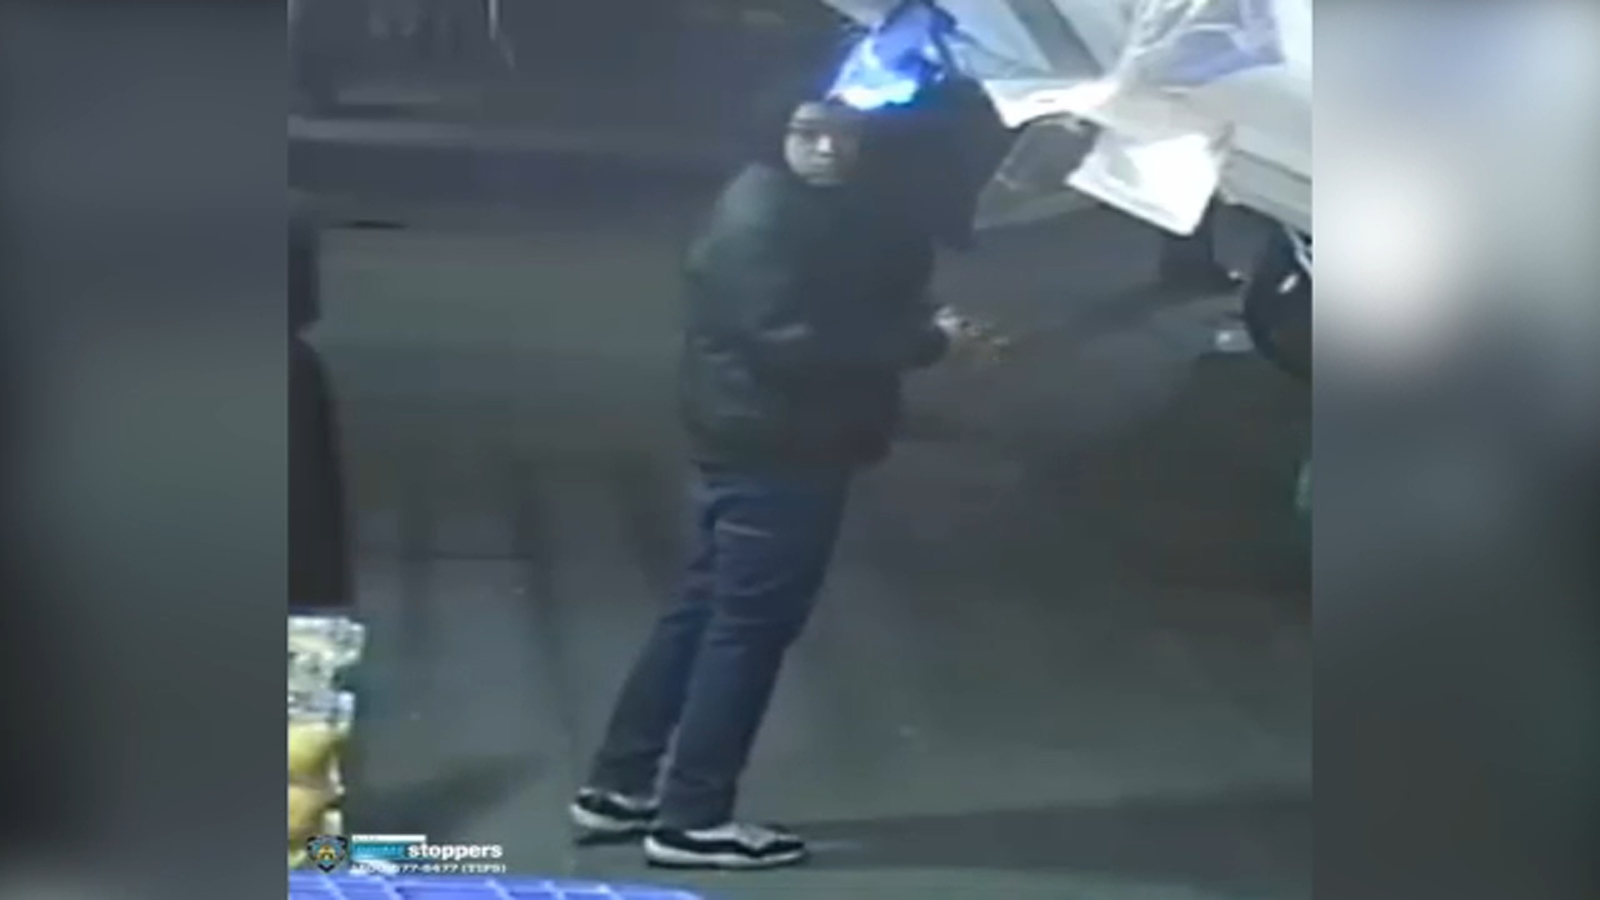 Surveillance video of suspect released after innocent social worker killed in Manhattan